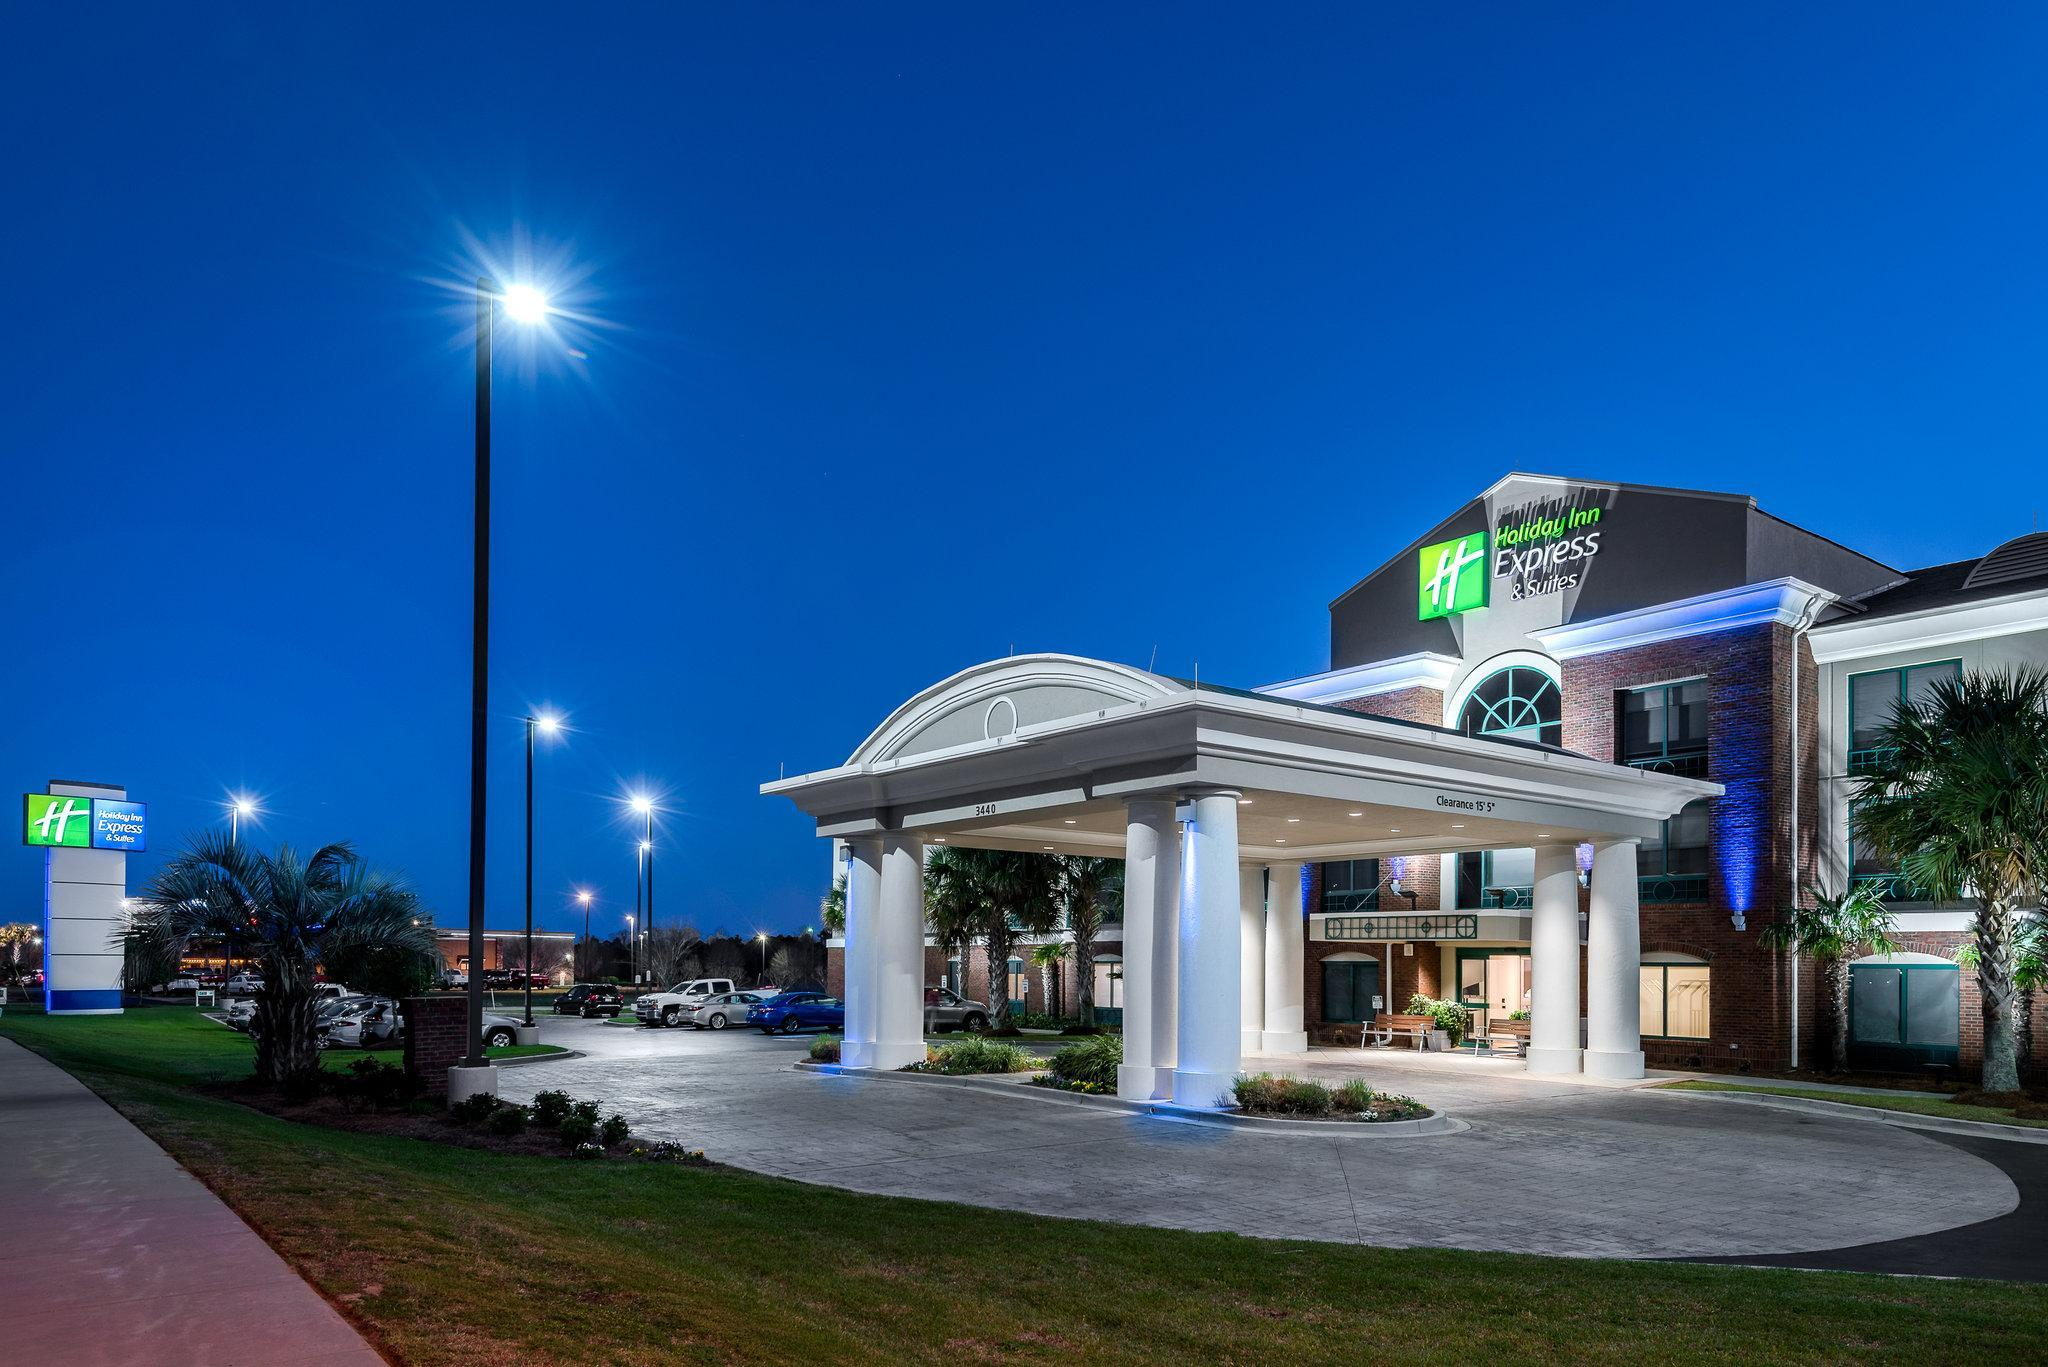 Holiday Inn Express Hotel & Suites Florence Civic Center, Florence